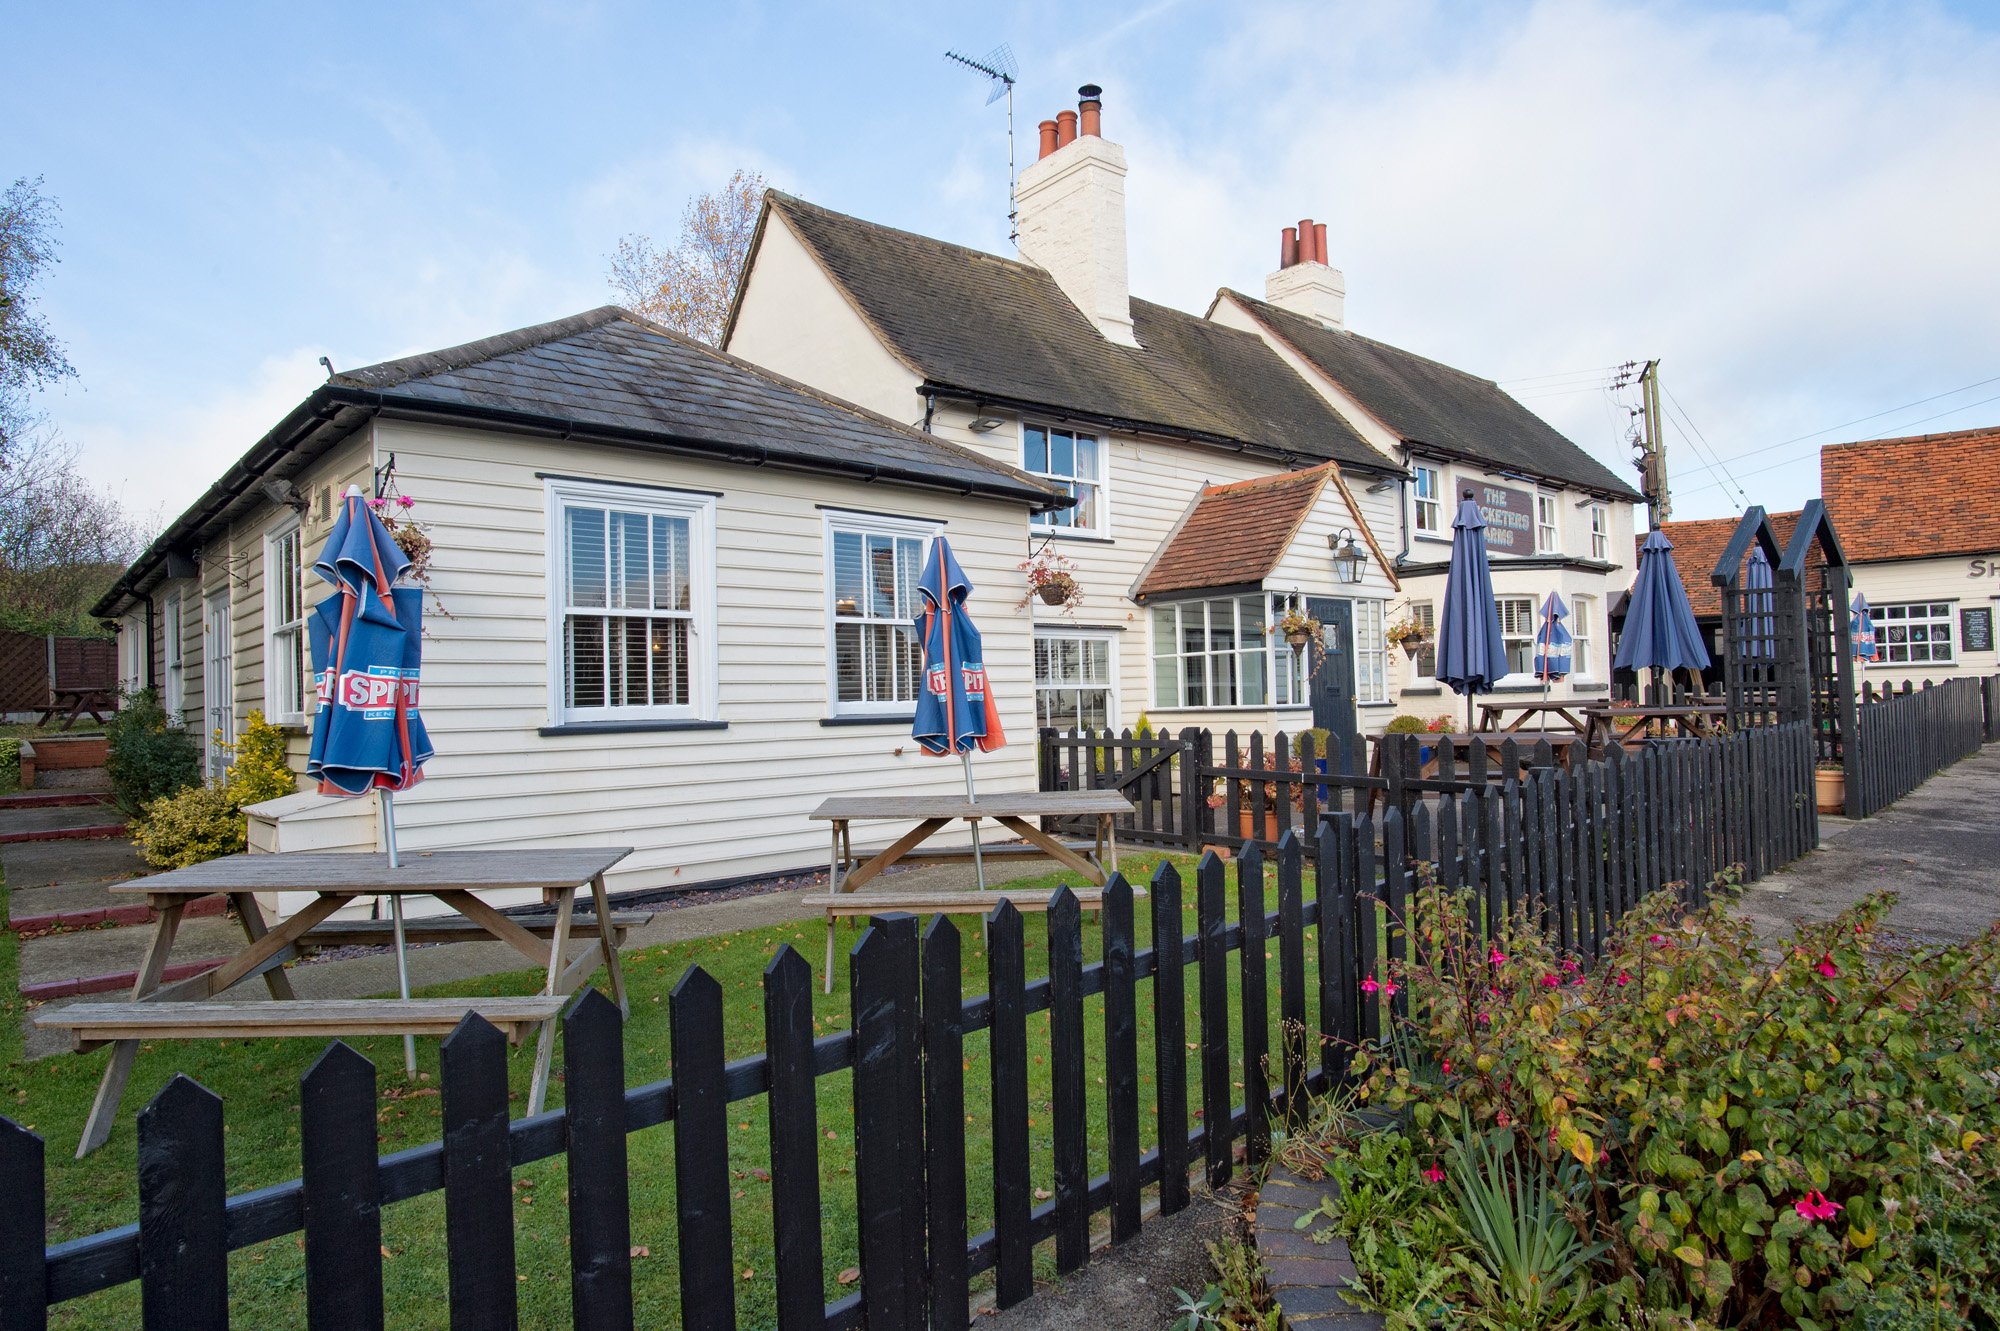 Cricketers Arms, Danbury, Chelmsford, Essex